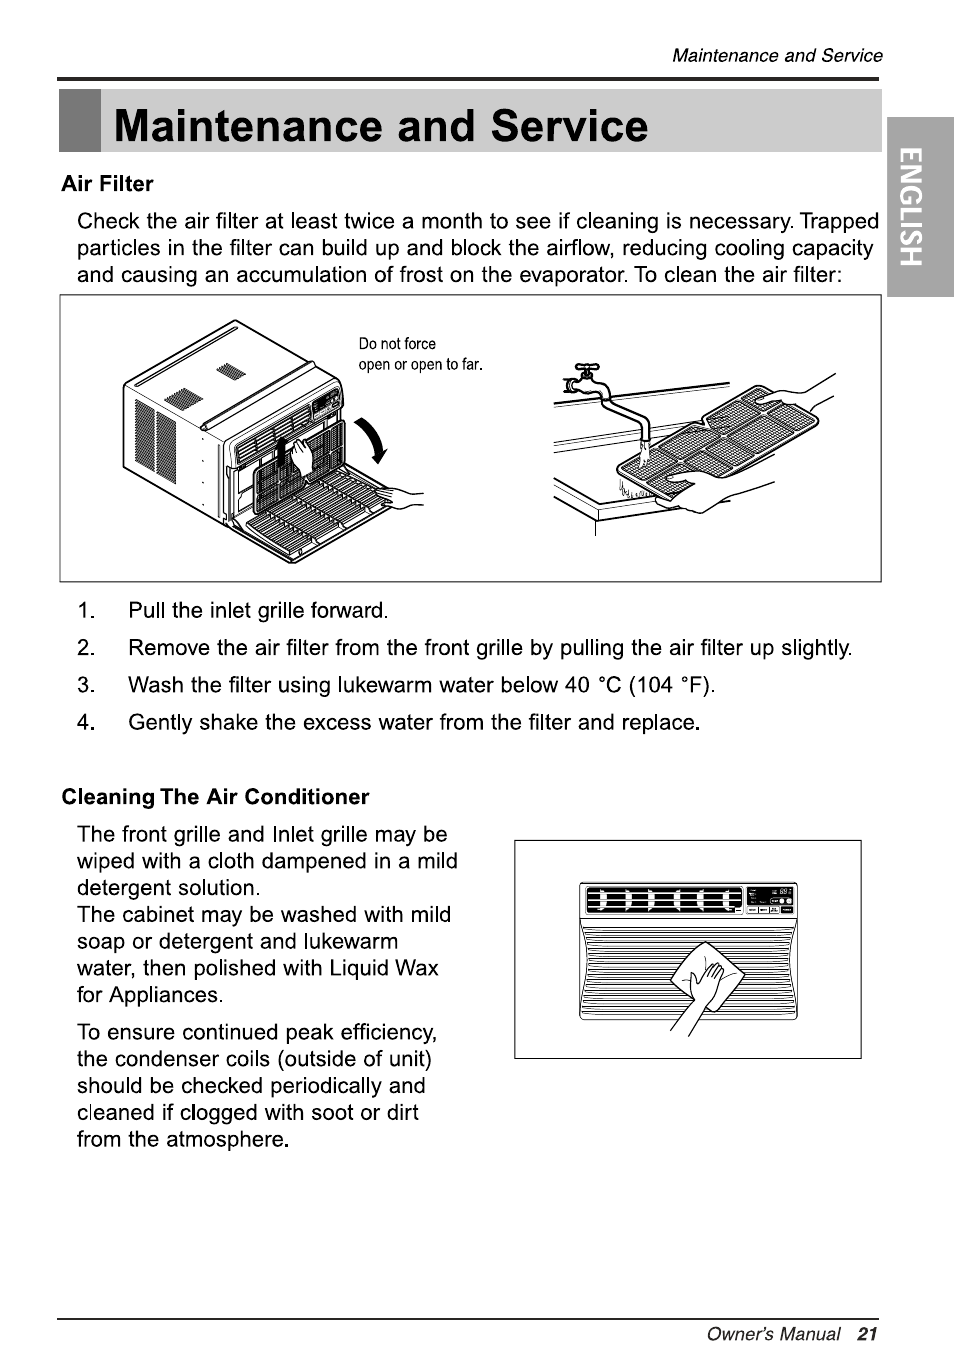 Maintenance and service, Air filter, Cleaning the air conditioner   LG  LW1010ER User Manual   Page 21 / 52